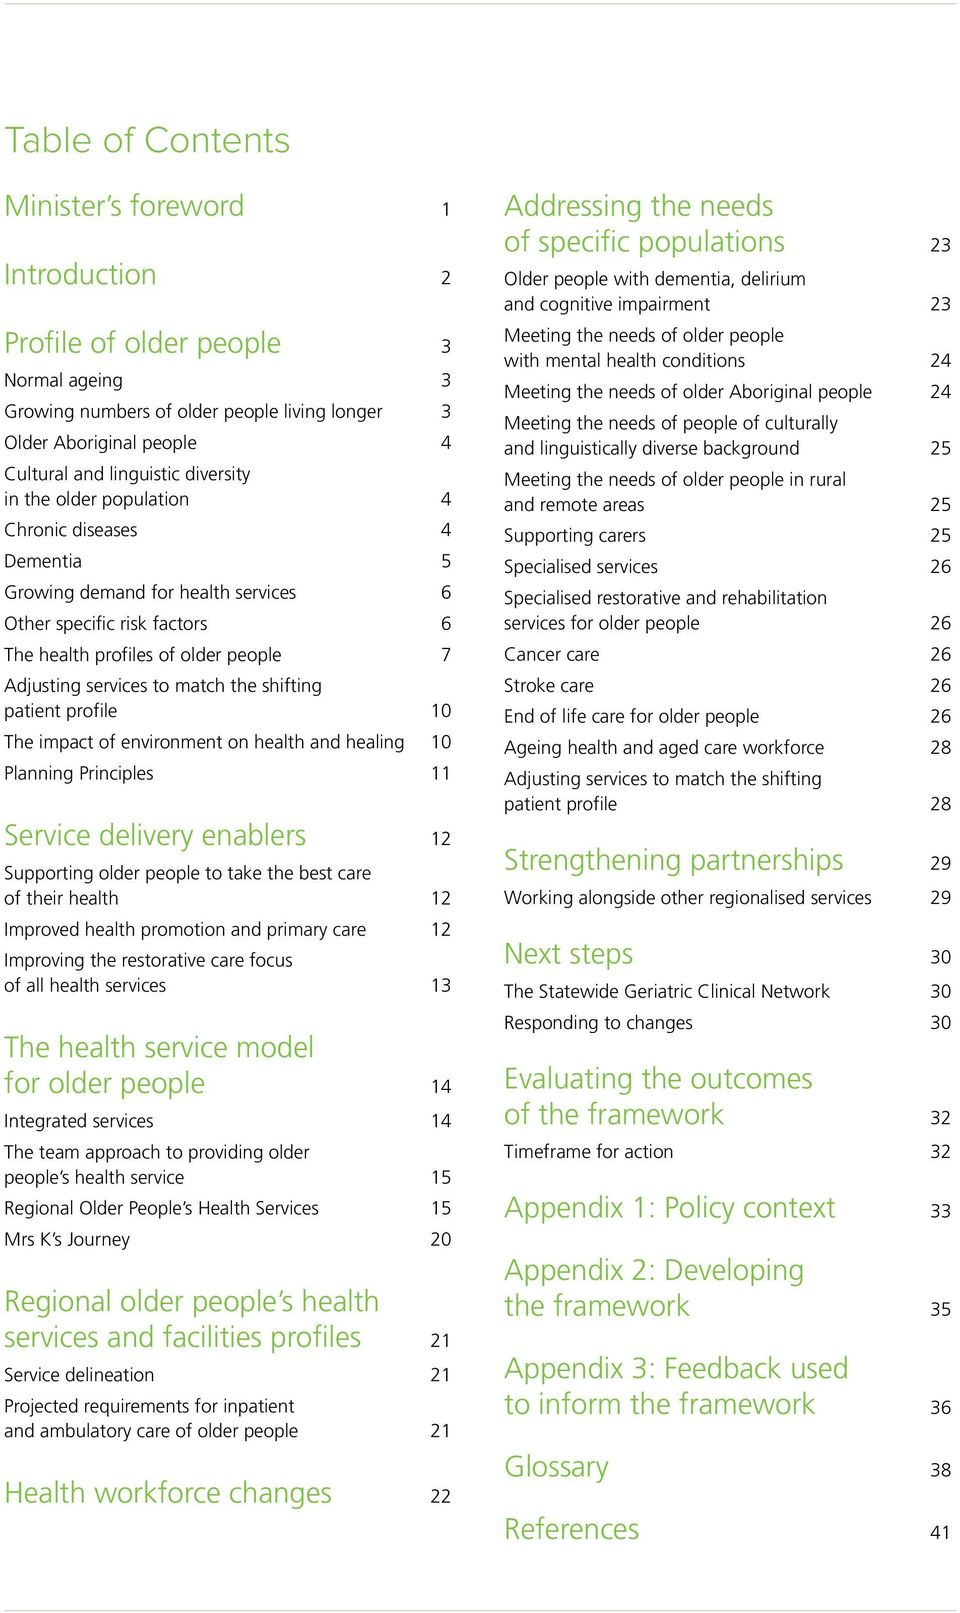 the shifting patient profile 10 The impact of environment on health and healing 10 Planning Principles 11 Service delivery enablers 12 Supporting older people to take the best care of their health 12